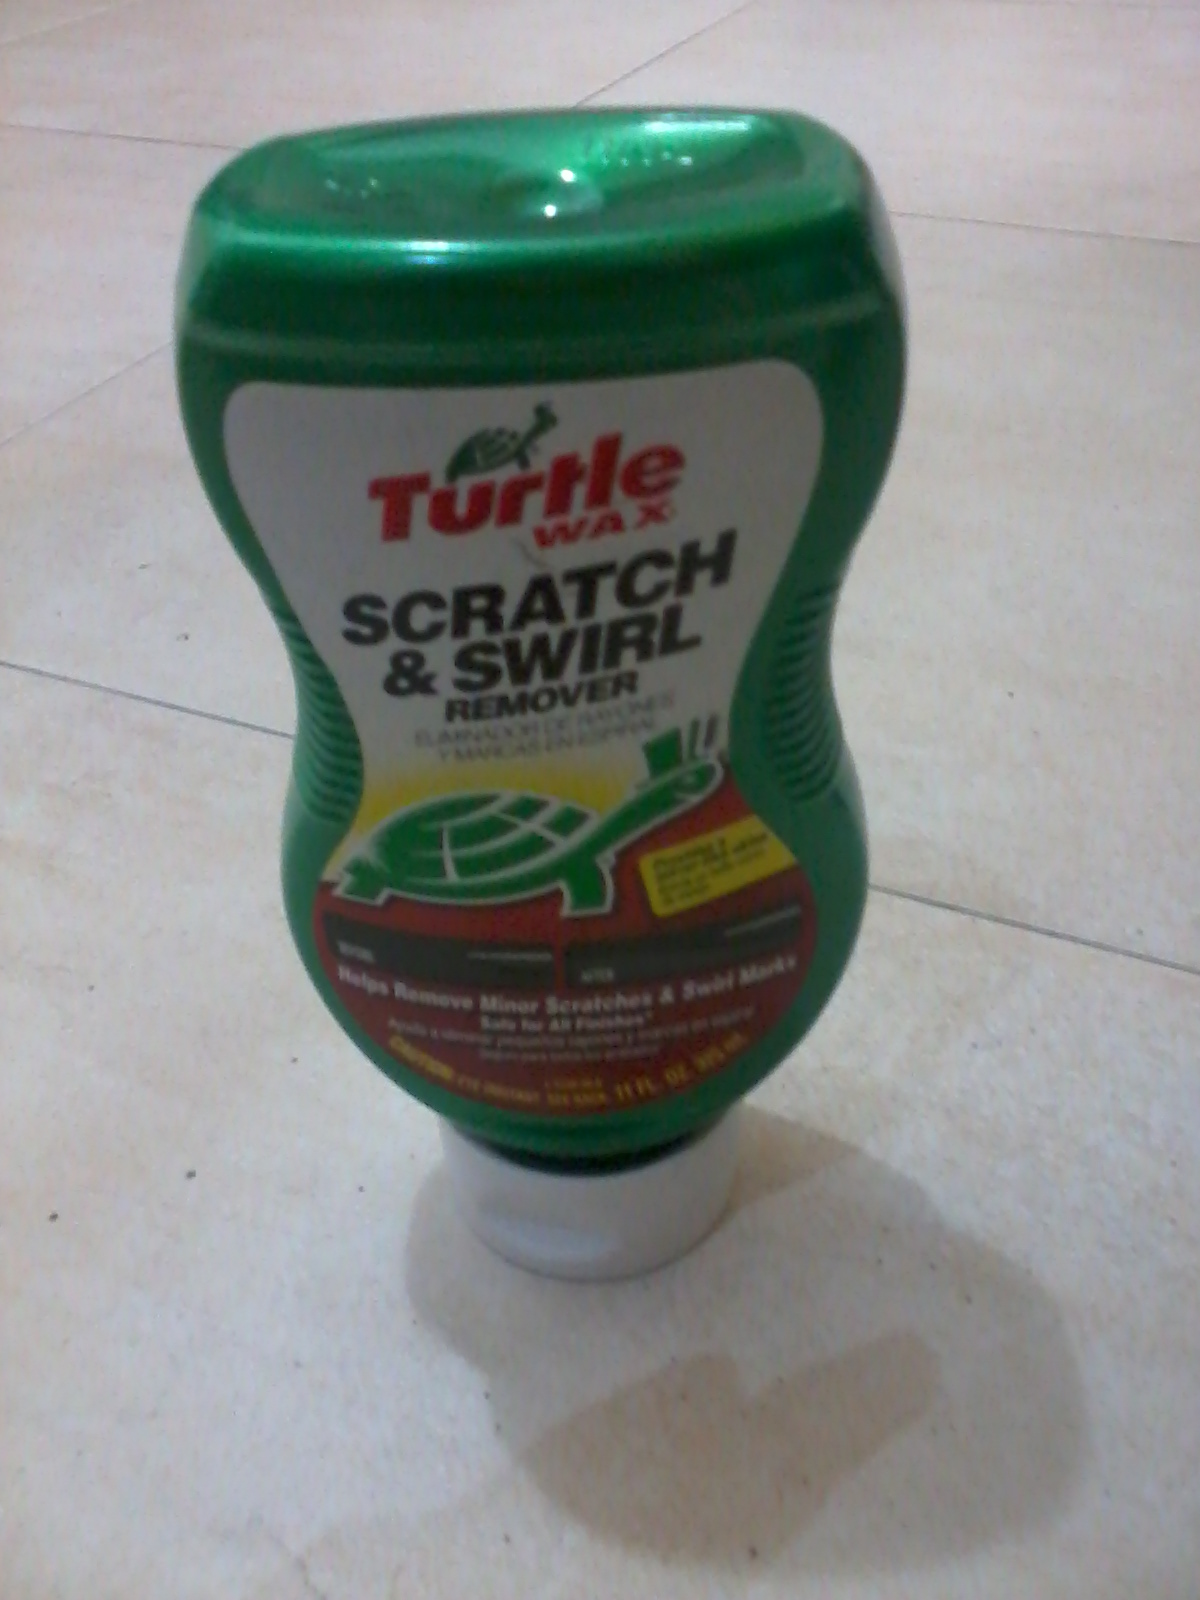 How to use and apply turtlewax scratch and swirl remover